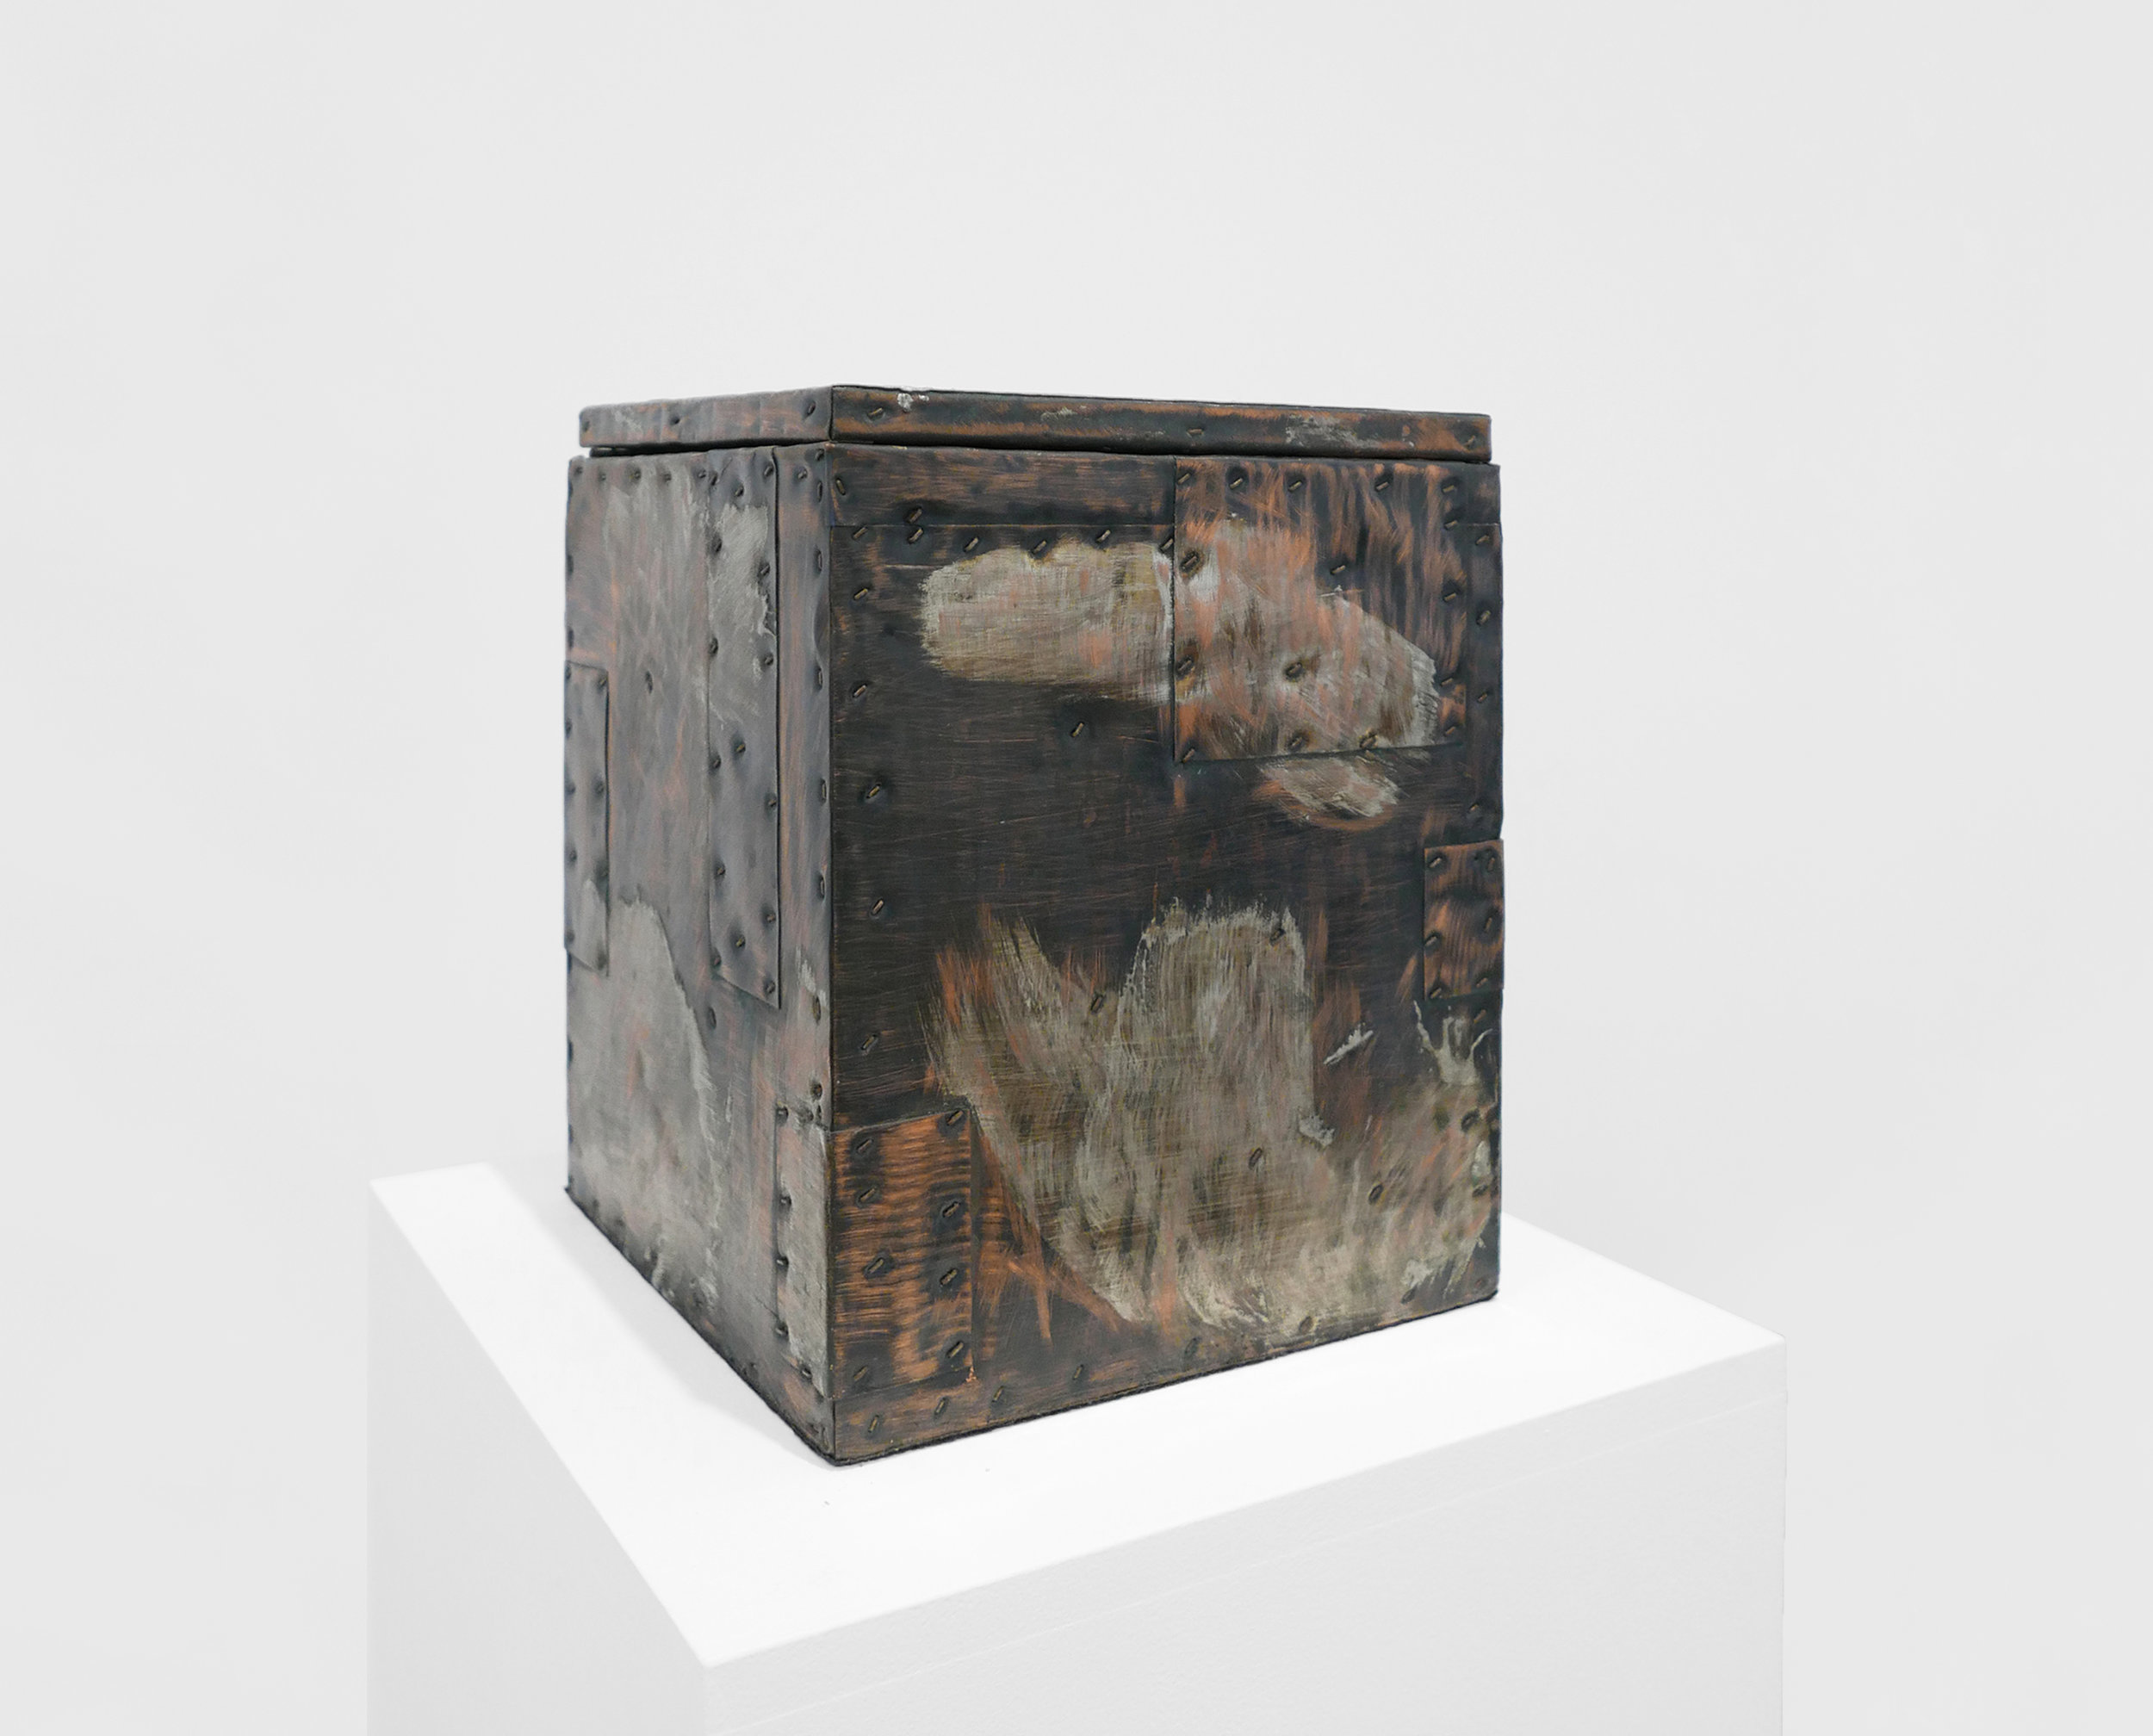 Paul Evans Lidded Box c. 1965, Patinated Copper, Steel and Brass, 13.25 x 10 x 10%22_1.jpg